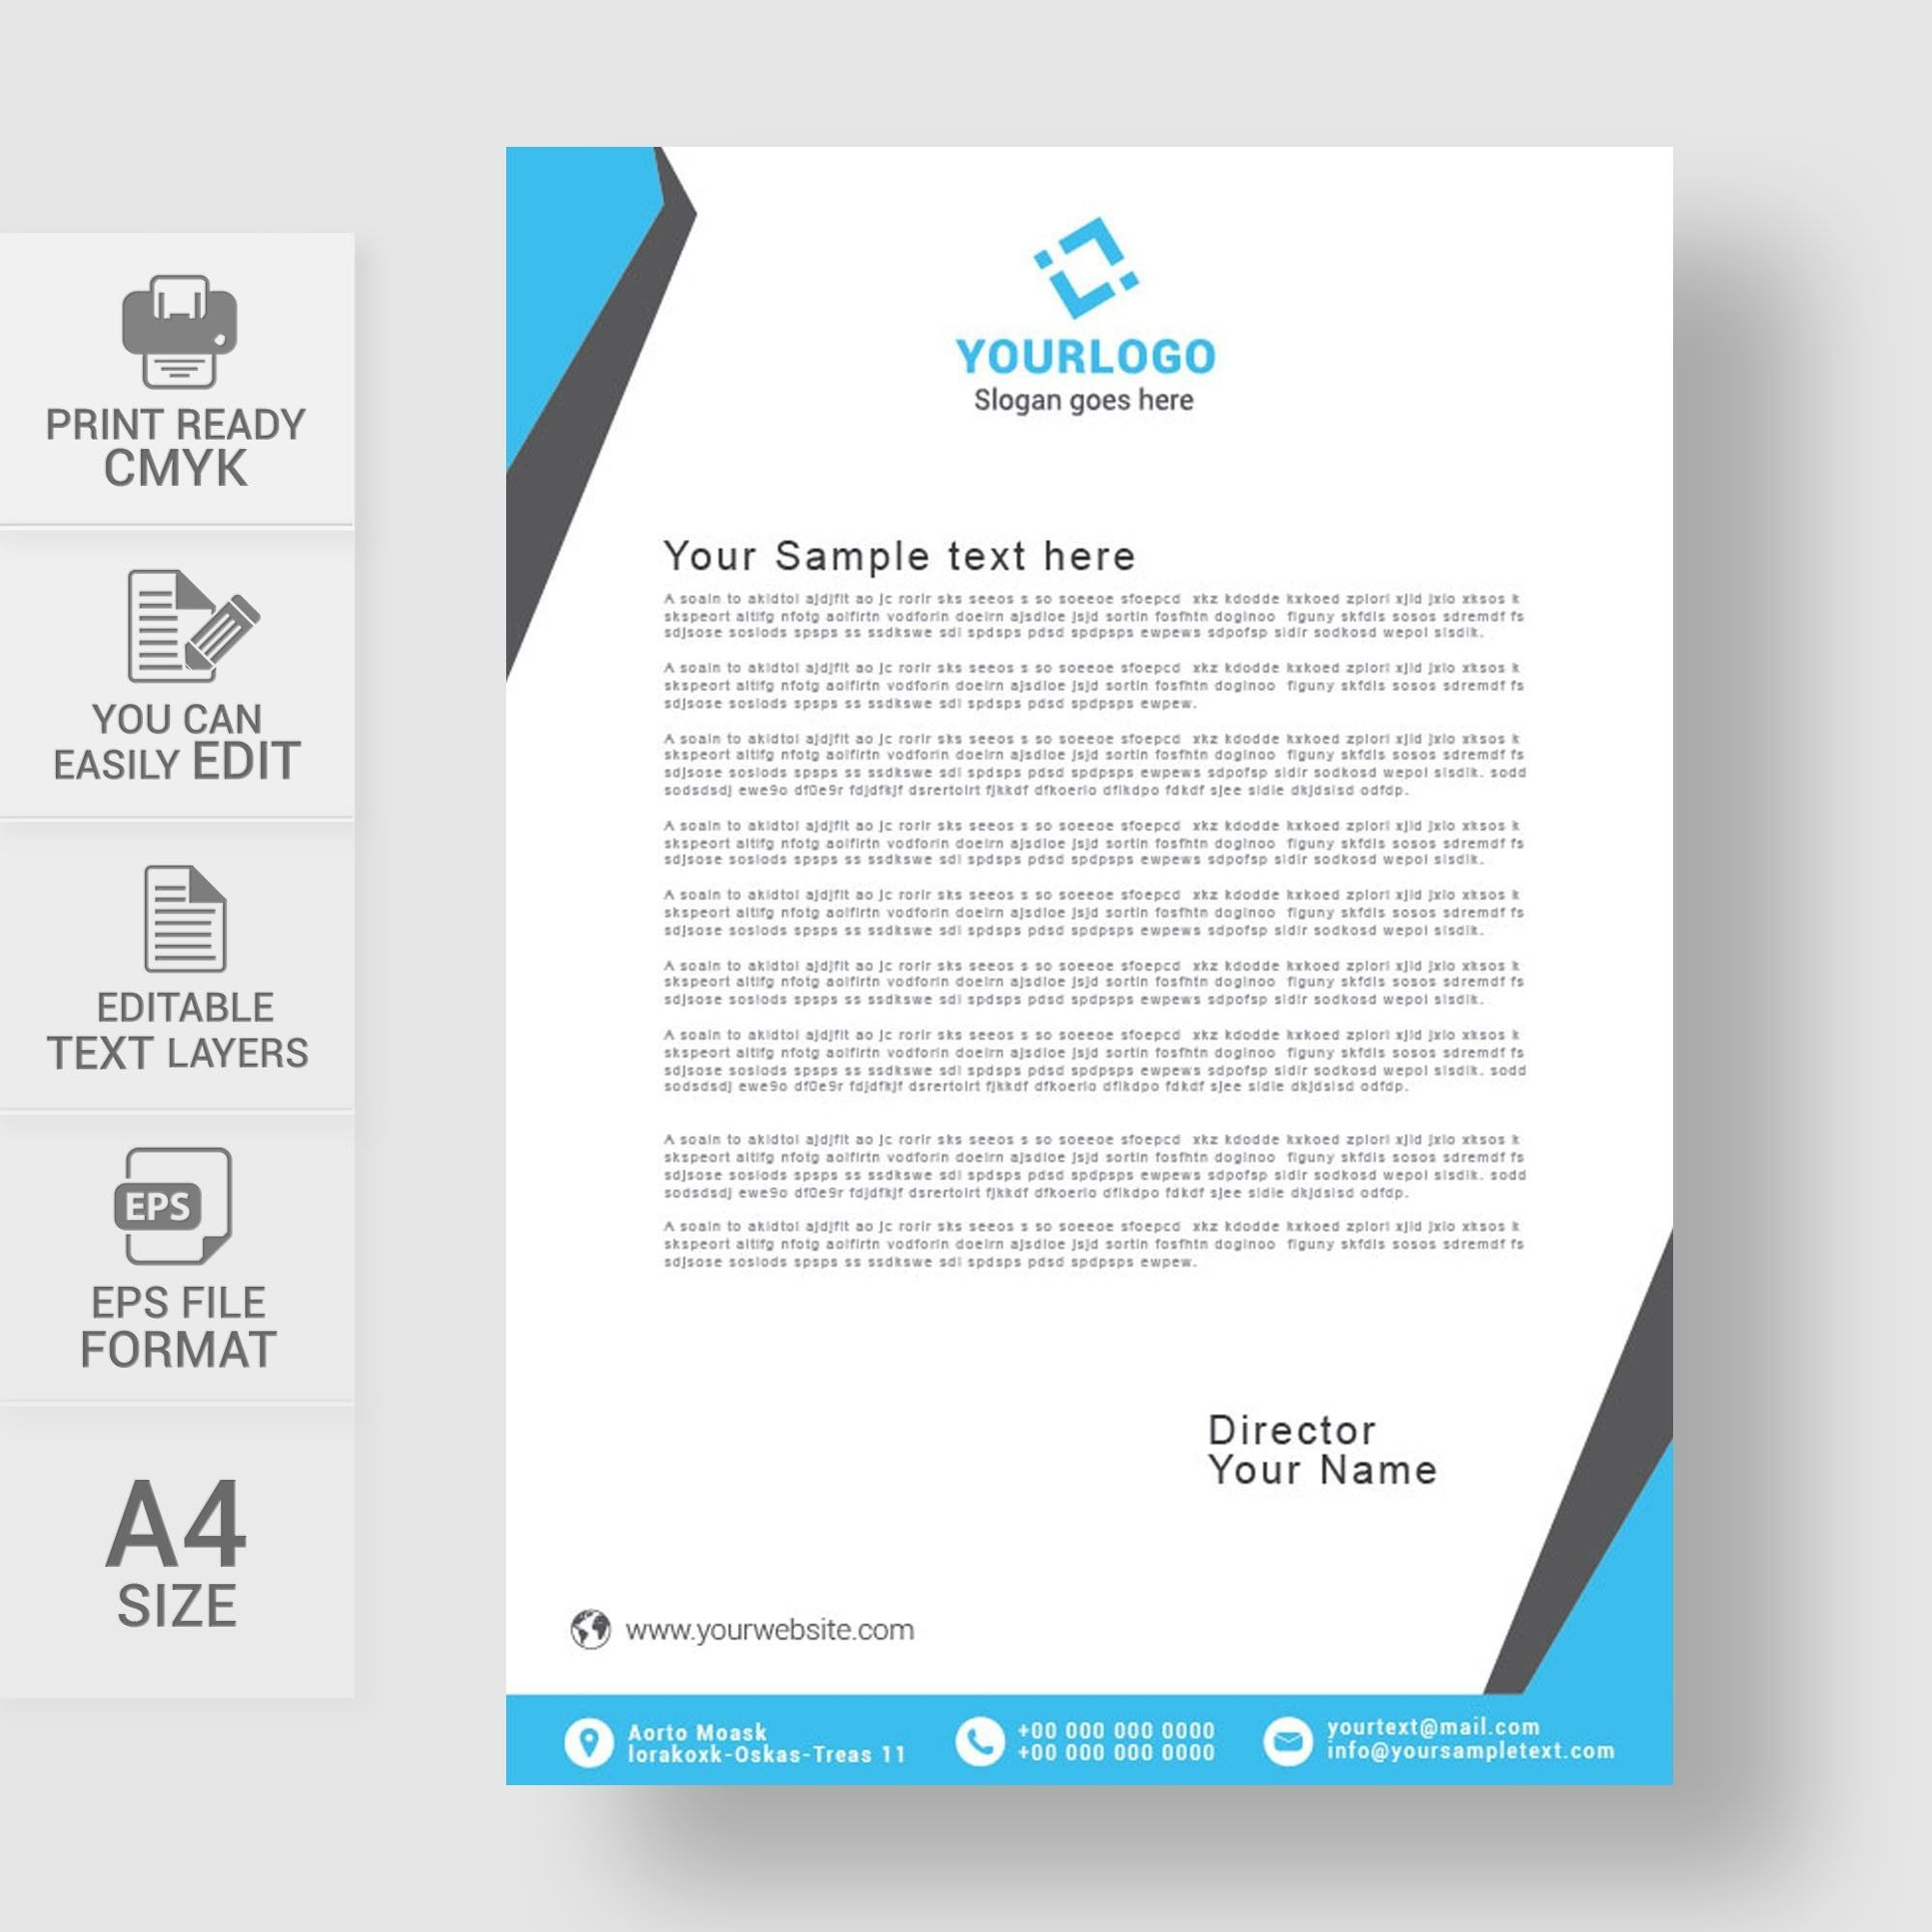 002 Striking Company Letterhead Format In Word Free Download Picture  Sample Template 2020Full